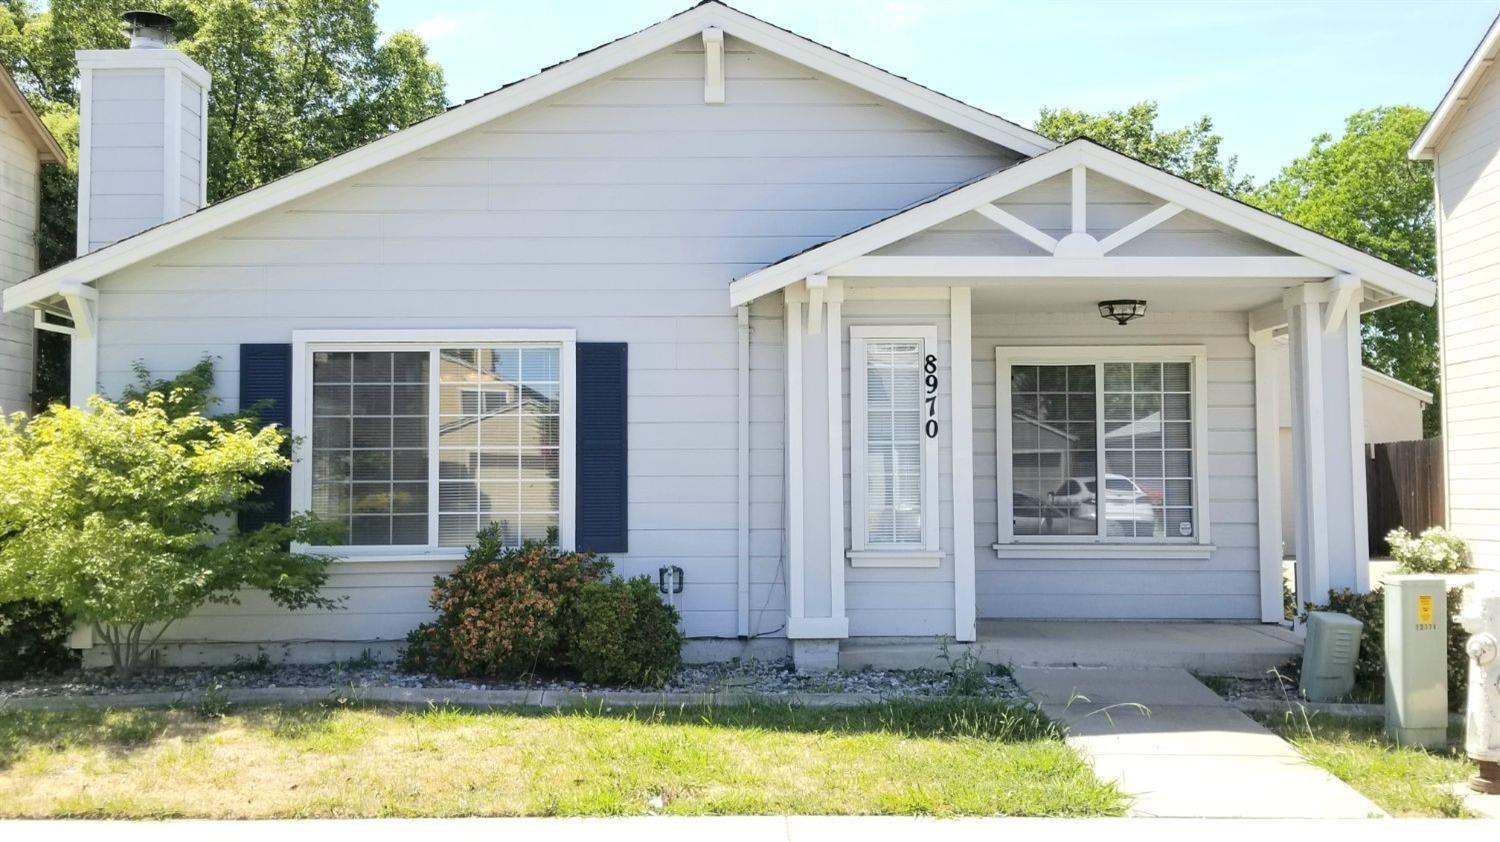 Location Location Location ...Nestled in a very desirable part of Elk Grove in a quiet neighborhood,